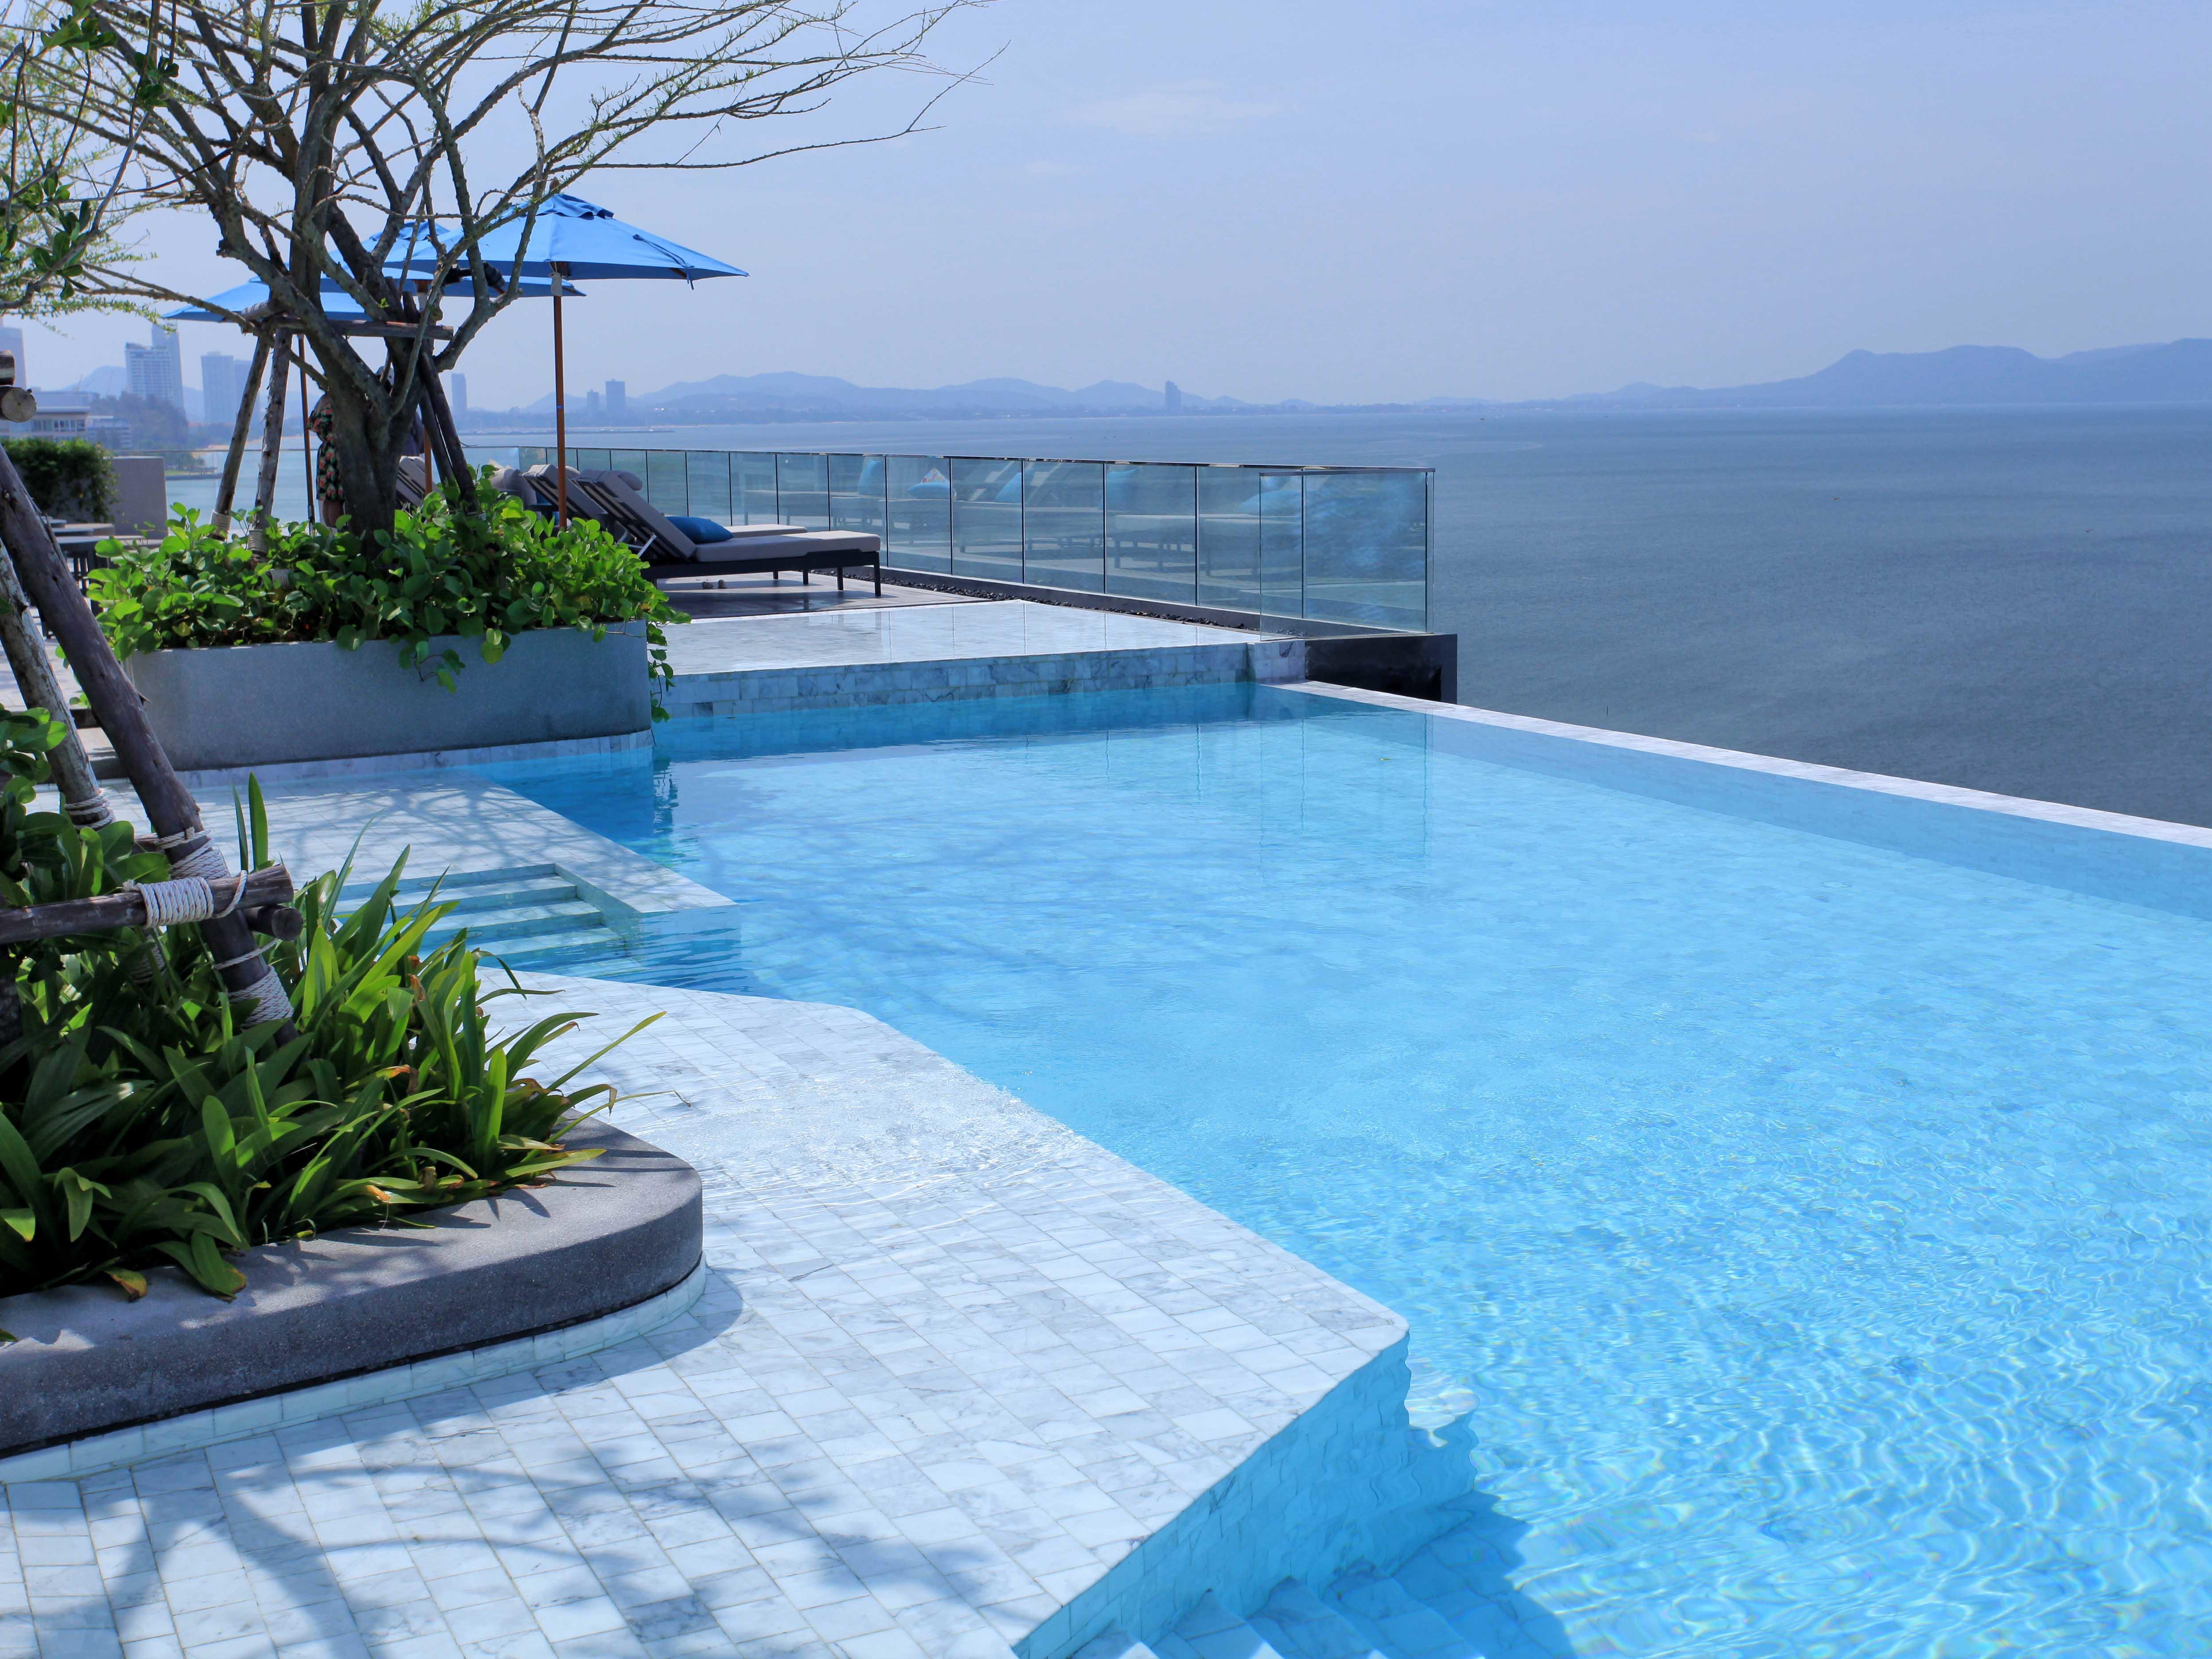 Rooftop Swimming Pool with sea view at U Hotels and Resorts